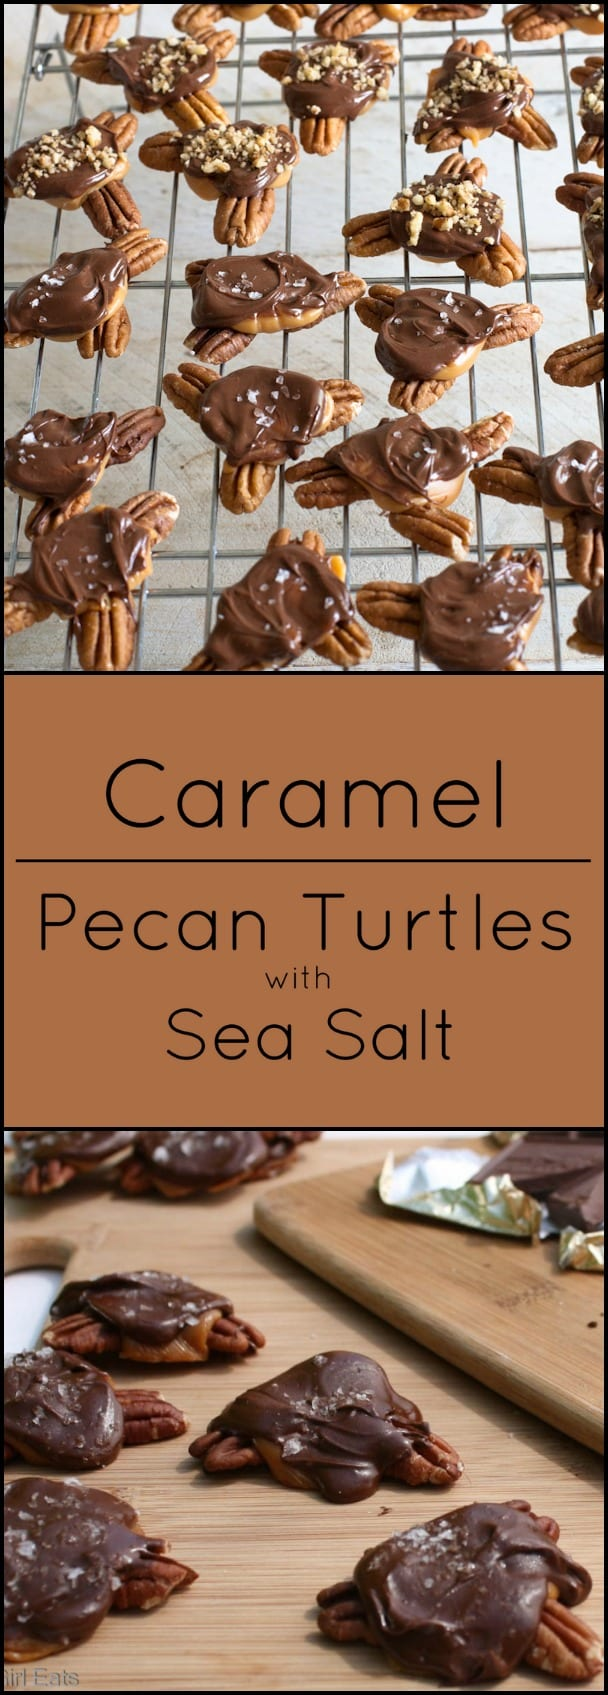 Gluten free Caramel Pecan Turtles with Sea Salt.